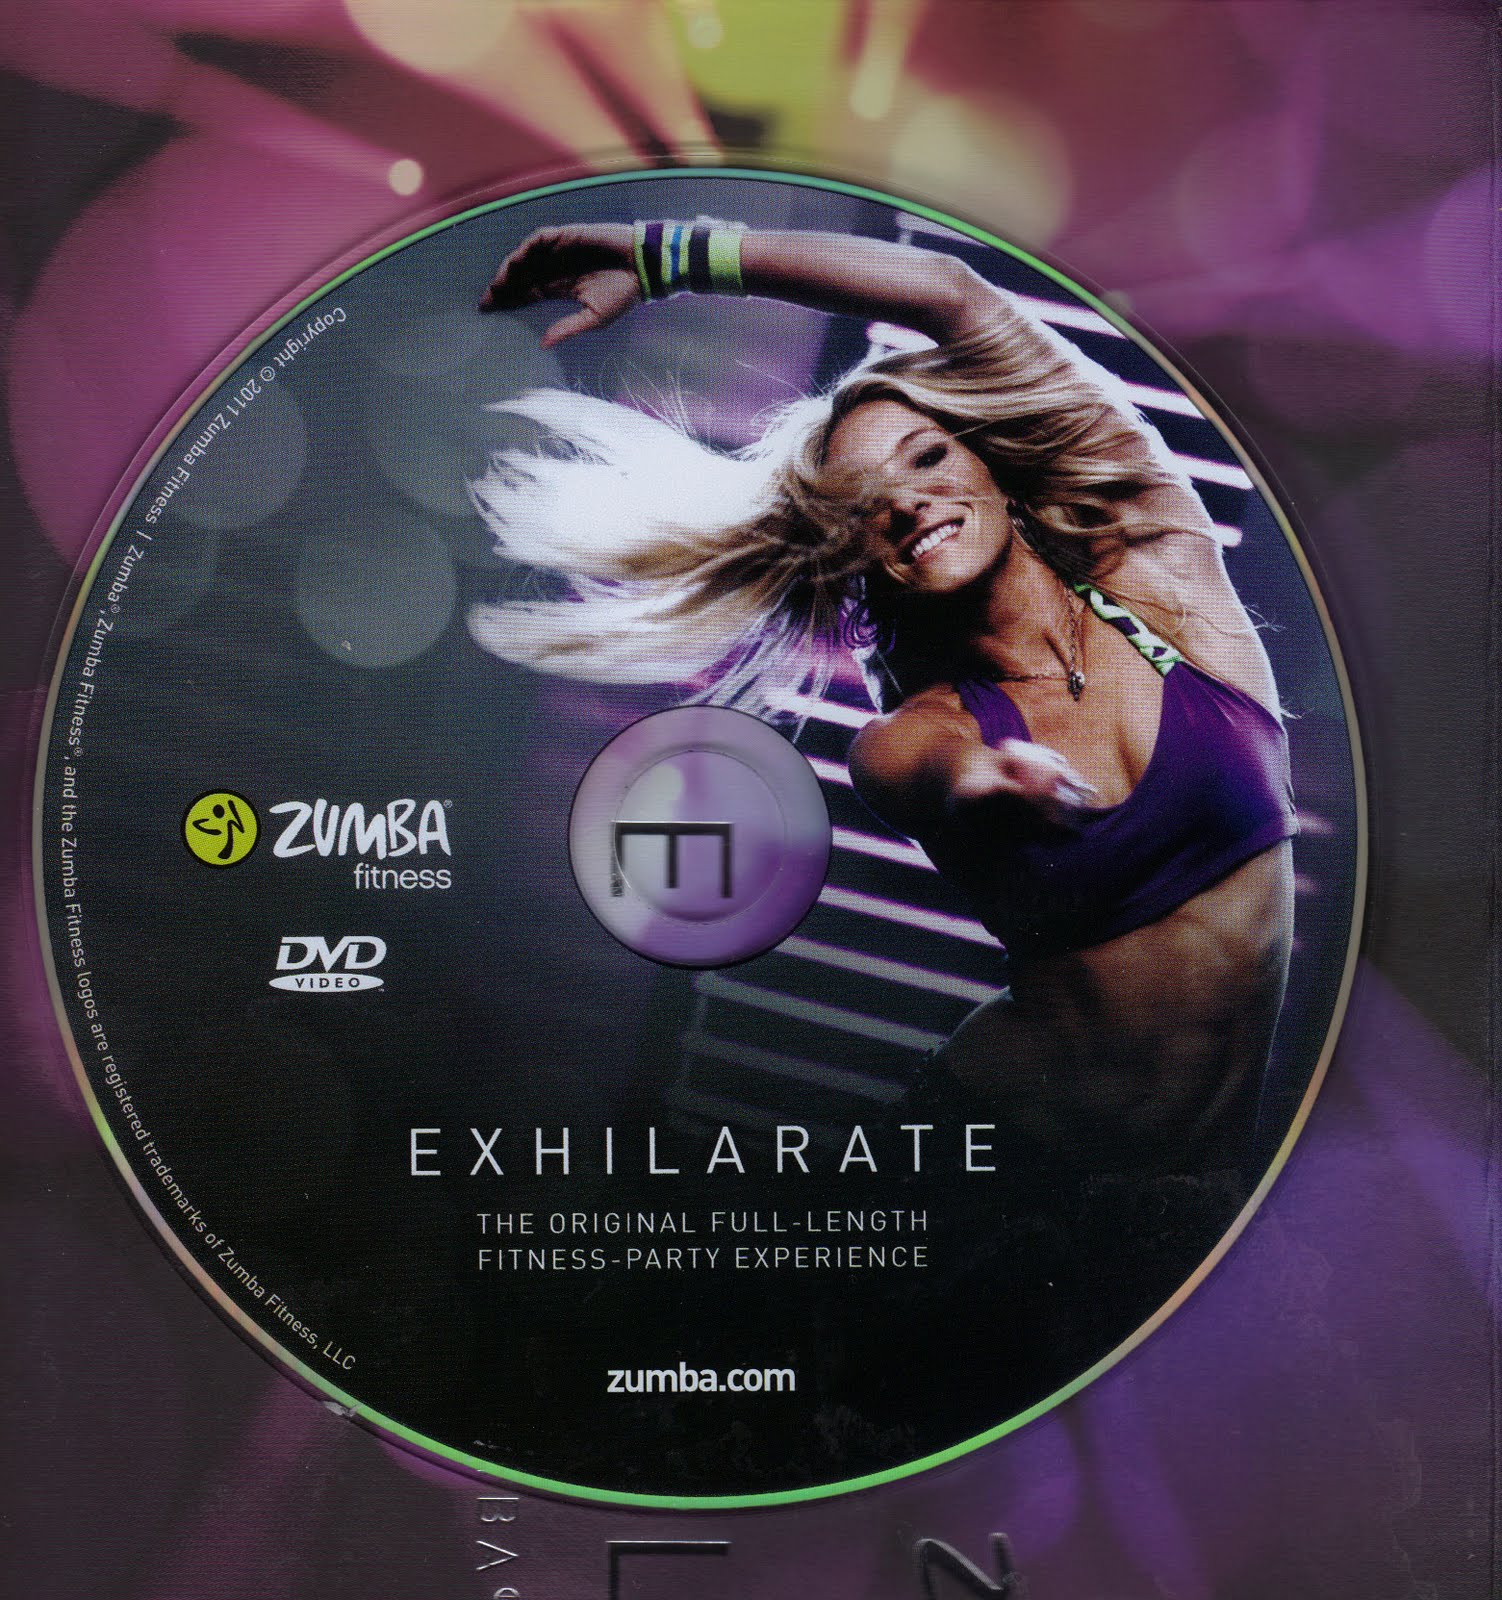 SaundraZumba Fitness Exhilarate Dvd